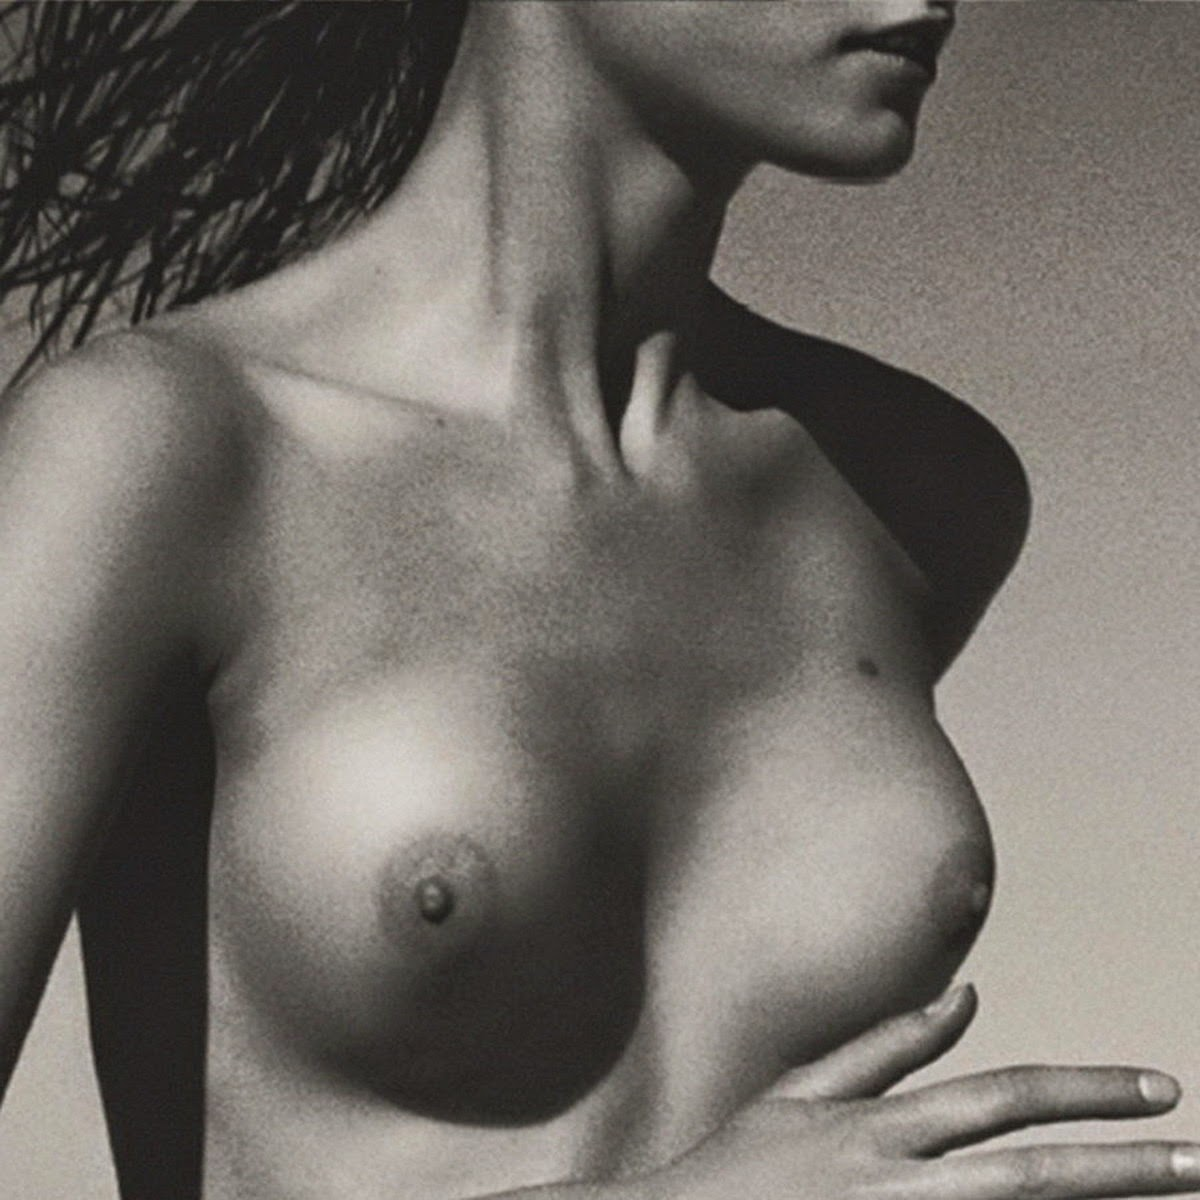 Paparazzi Patricia Velasquez nudes (92 foto and video), Tits, Is a cute, Twitter, braless 2015